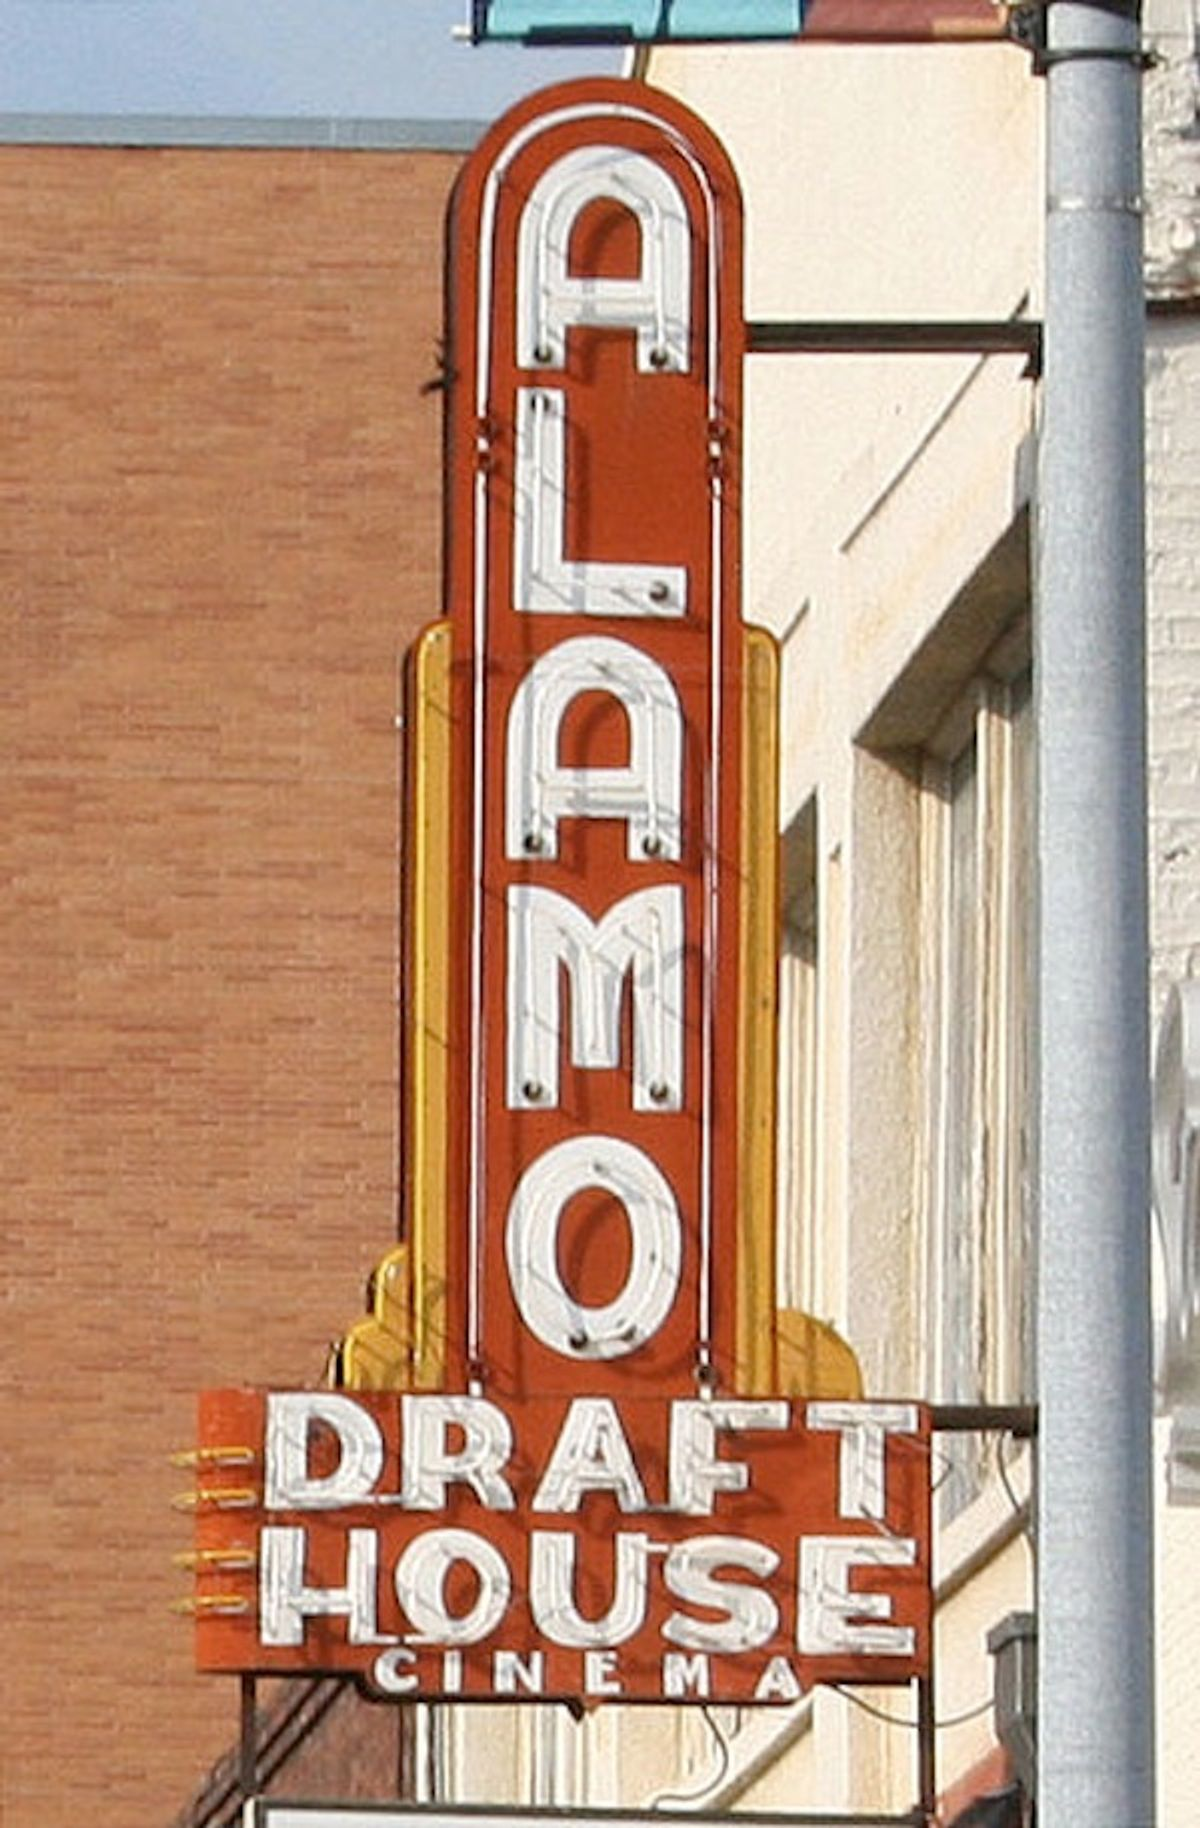 Remember the Alamo ... and its cinema's policy regarding text messaging.